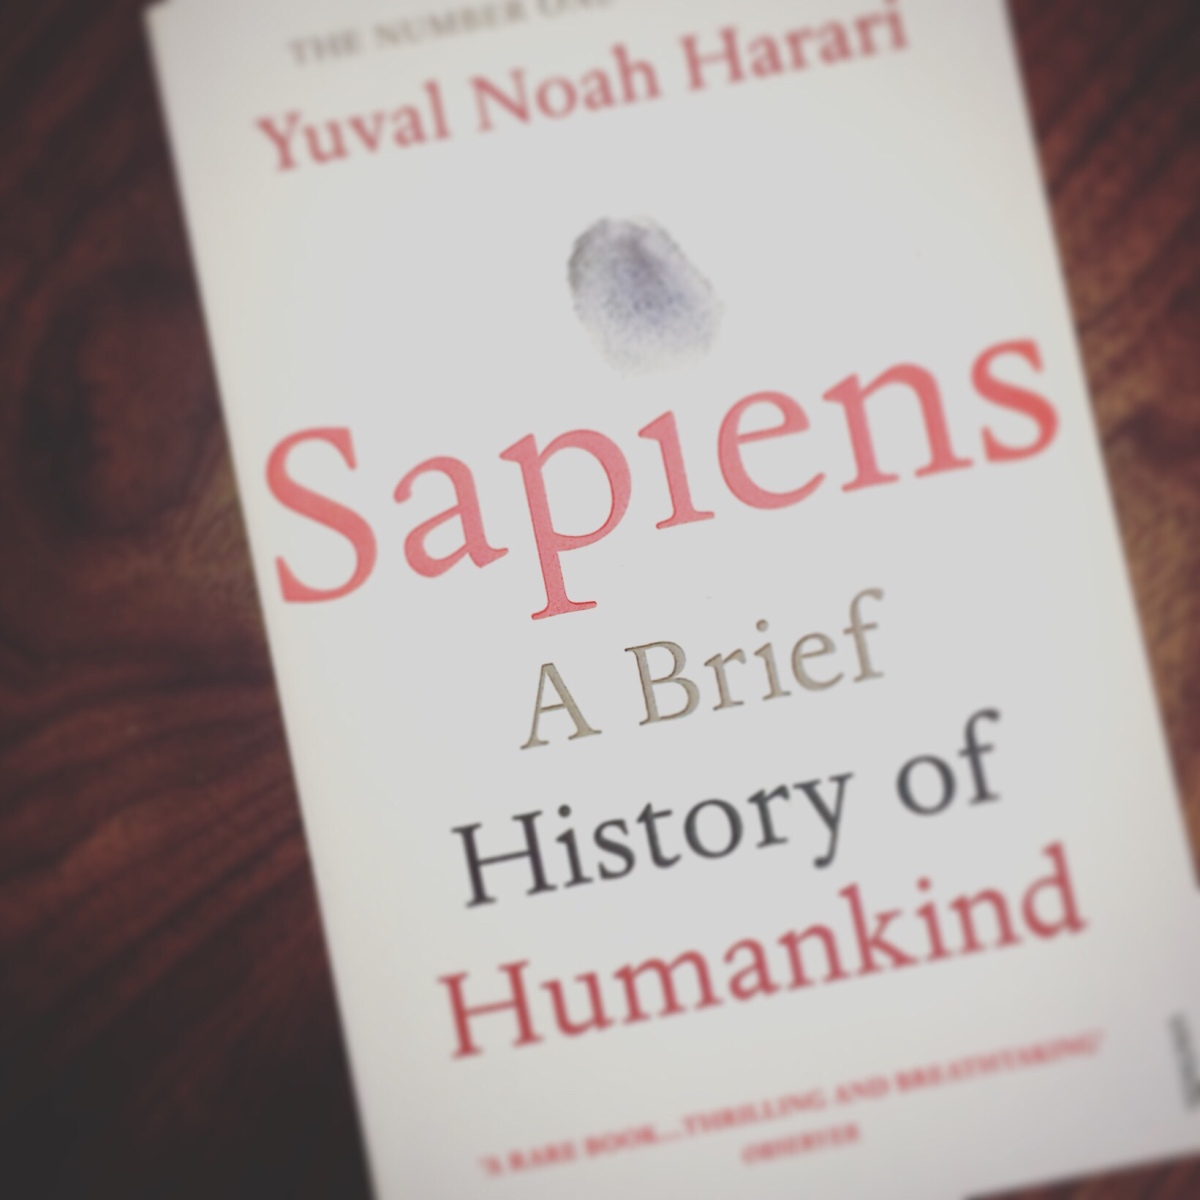 Book of da Week: Sapiens - A Brief History of Humankind by Harari